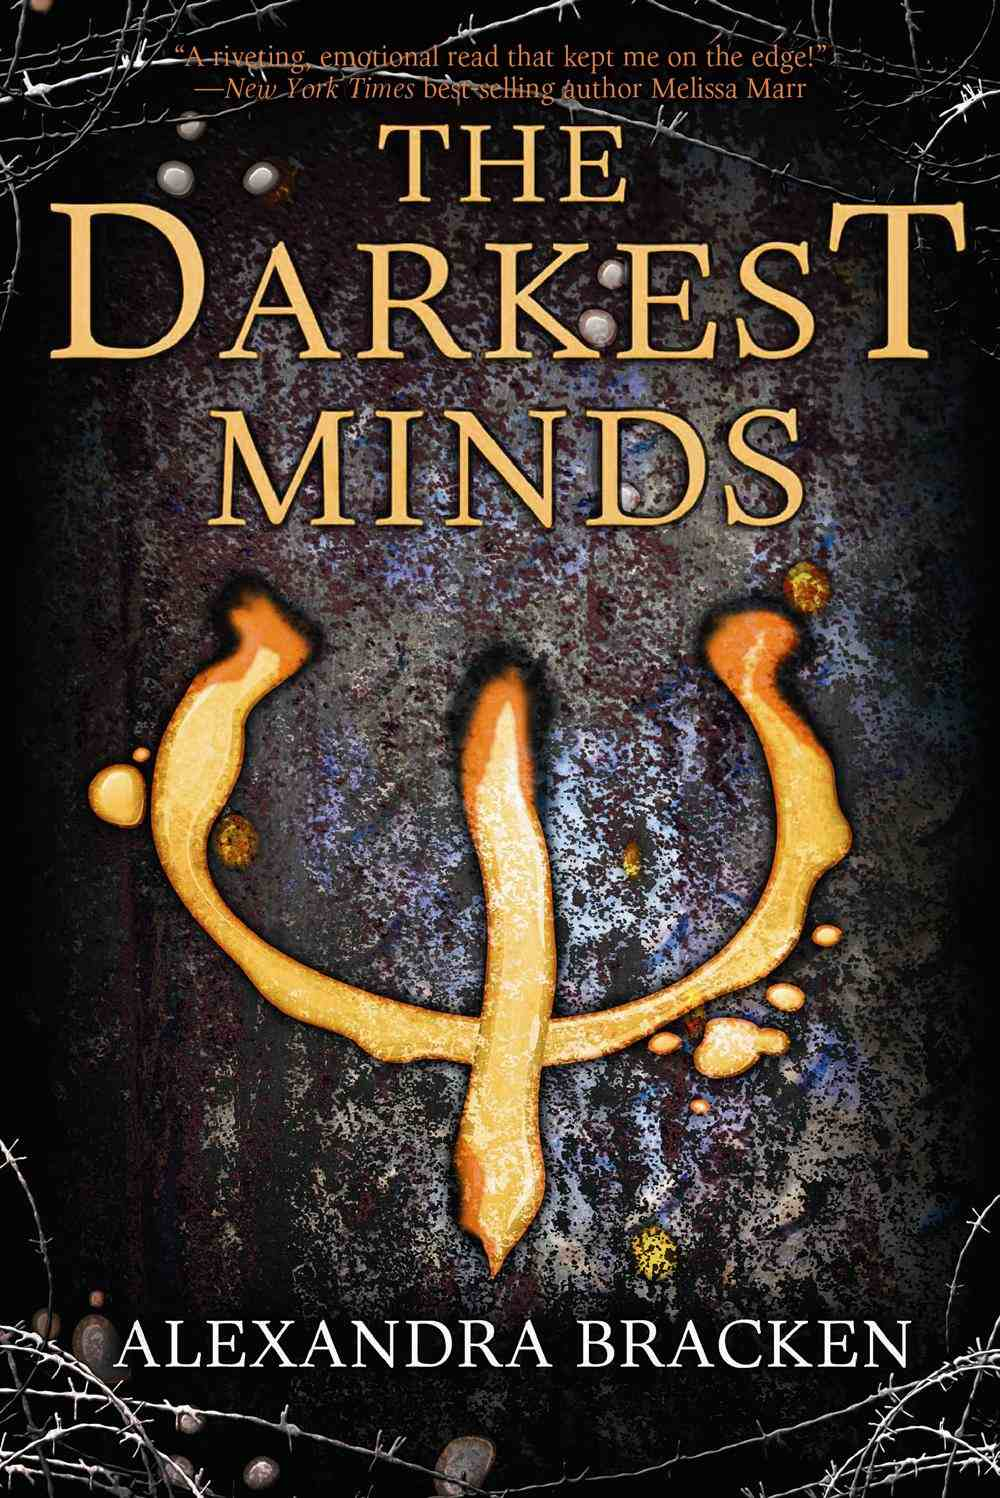 The Darkest Minds by Alexandra Bracken Amazon | Goodreads